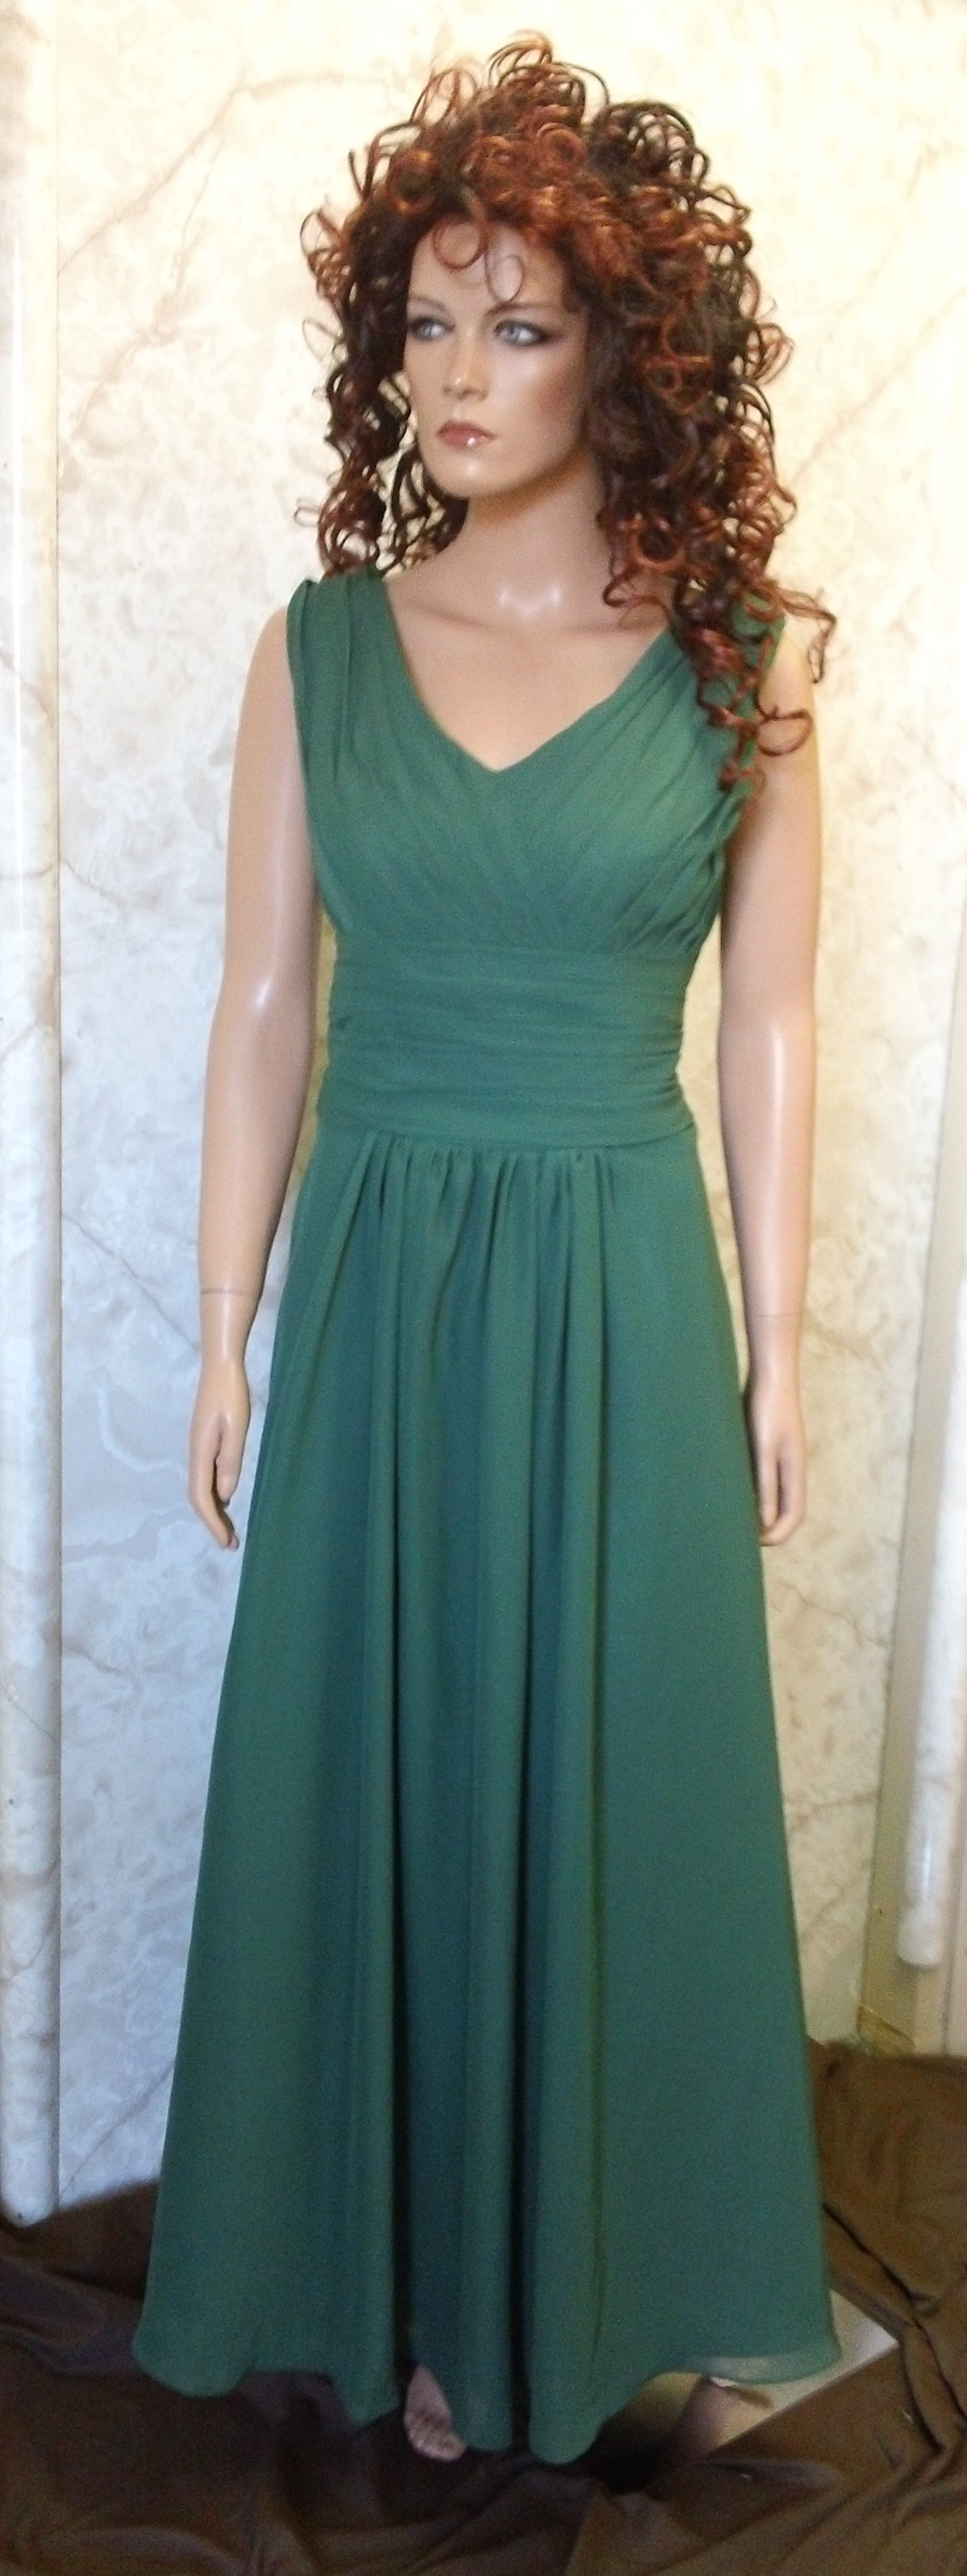 hunter green pleated bodice bridesmaid dress